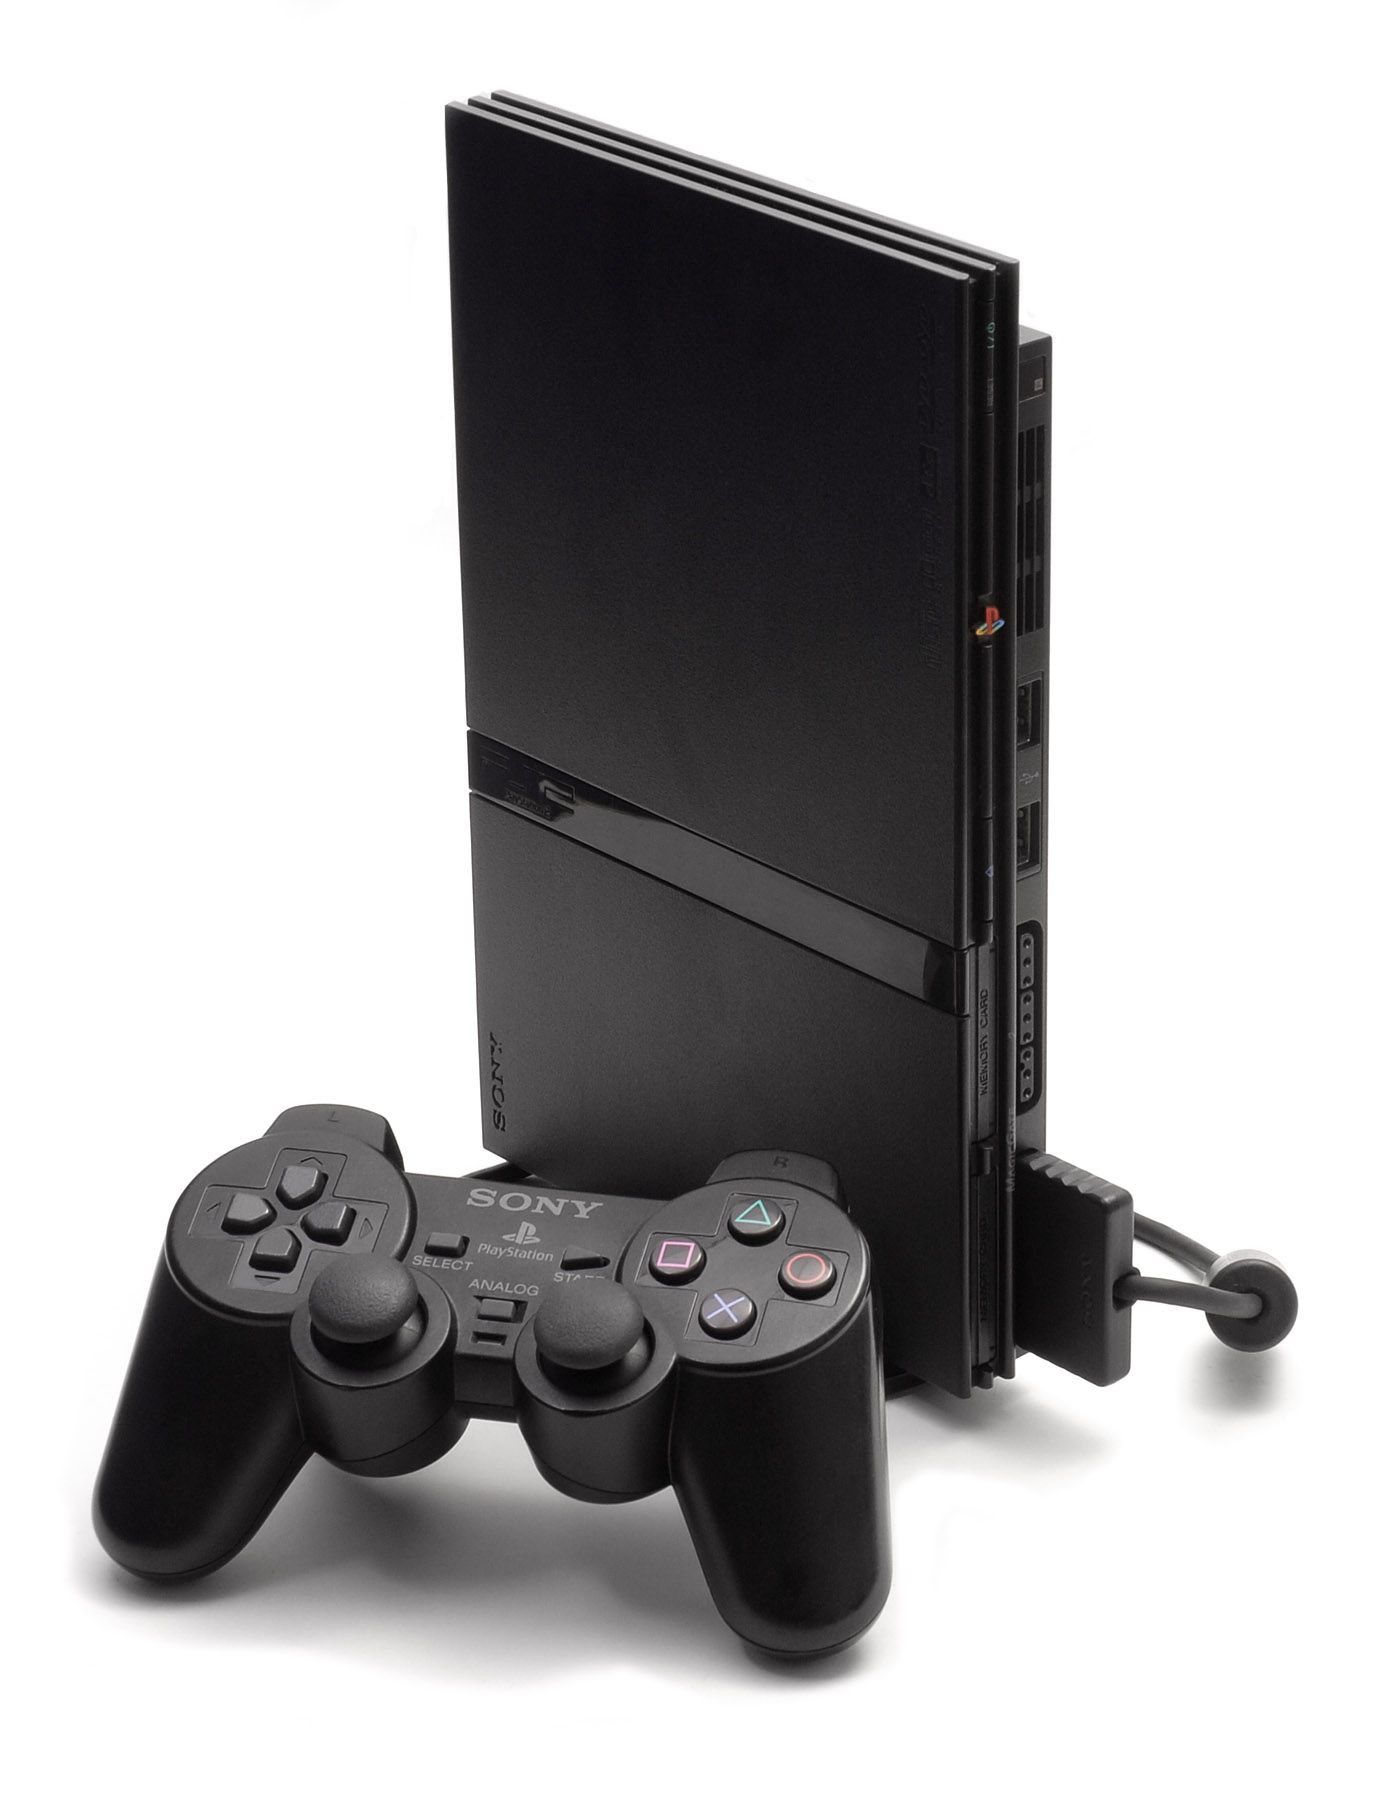 File:PS2-slim-console.jpg - Wikimedia Commons